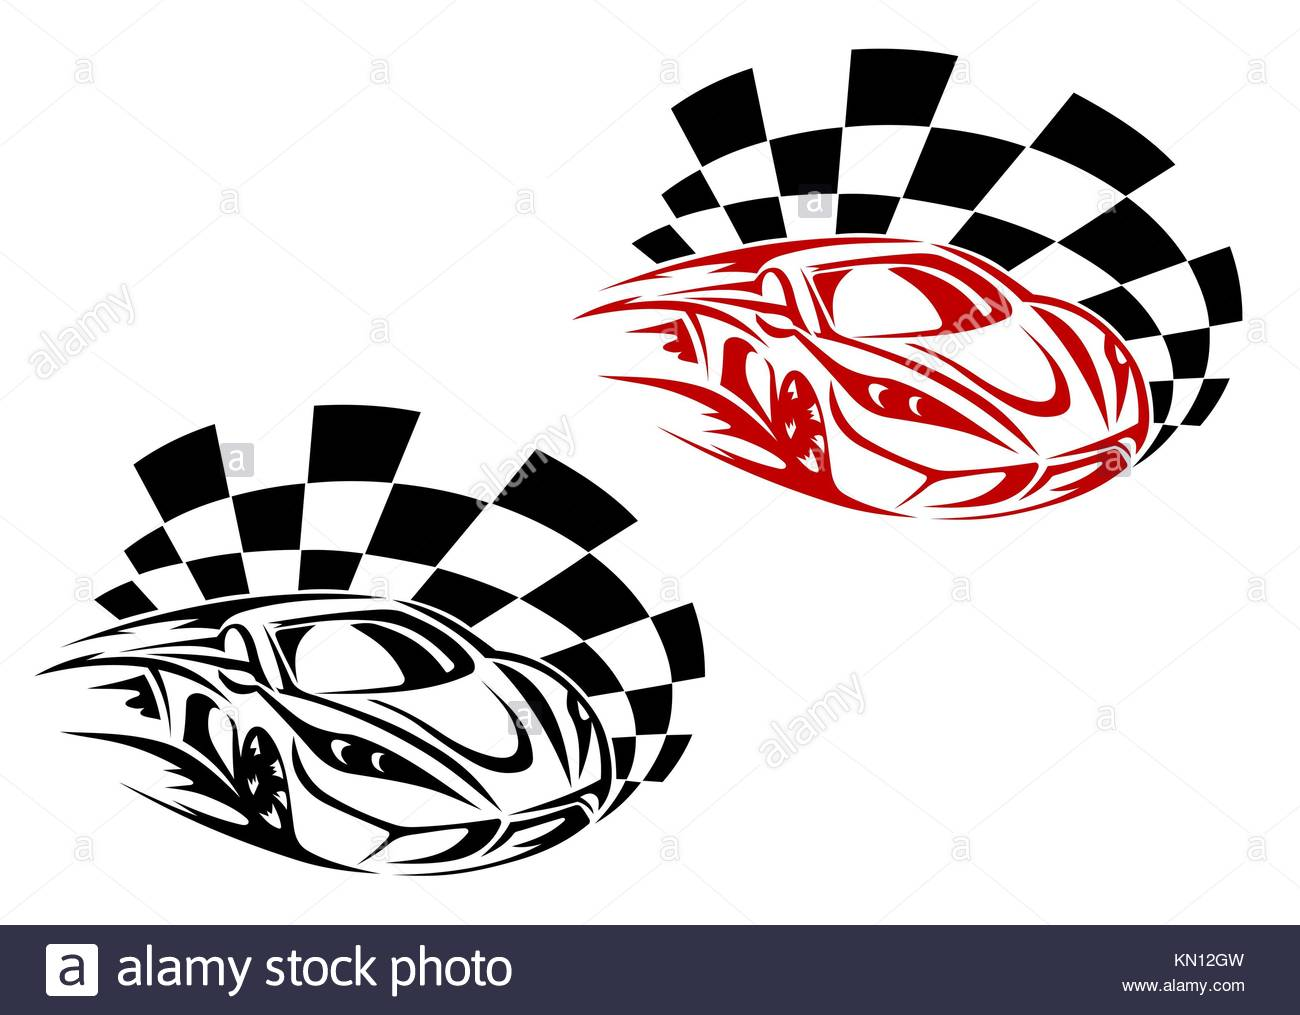 Racing cars and symbols for sports or tattoo design stock photo racing cars and symbols for sports or tattoo design biocorpaavc